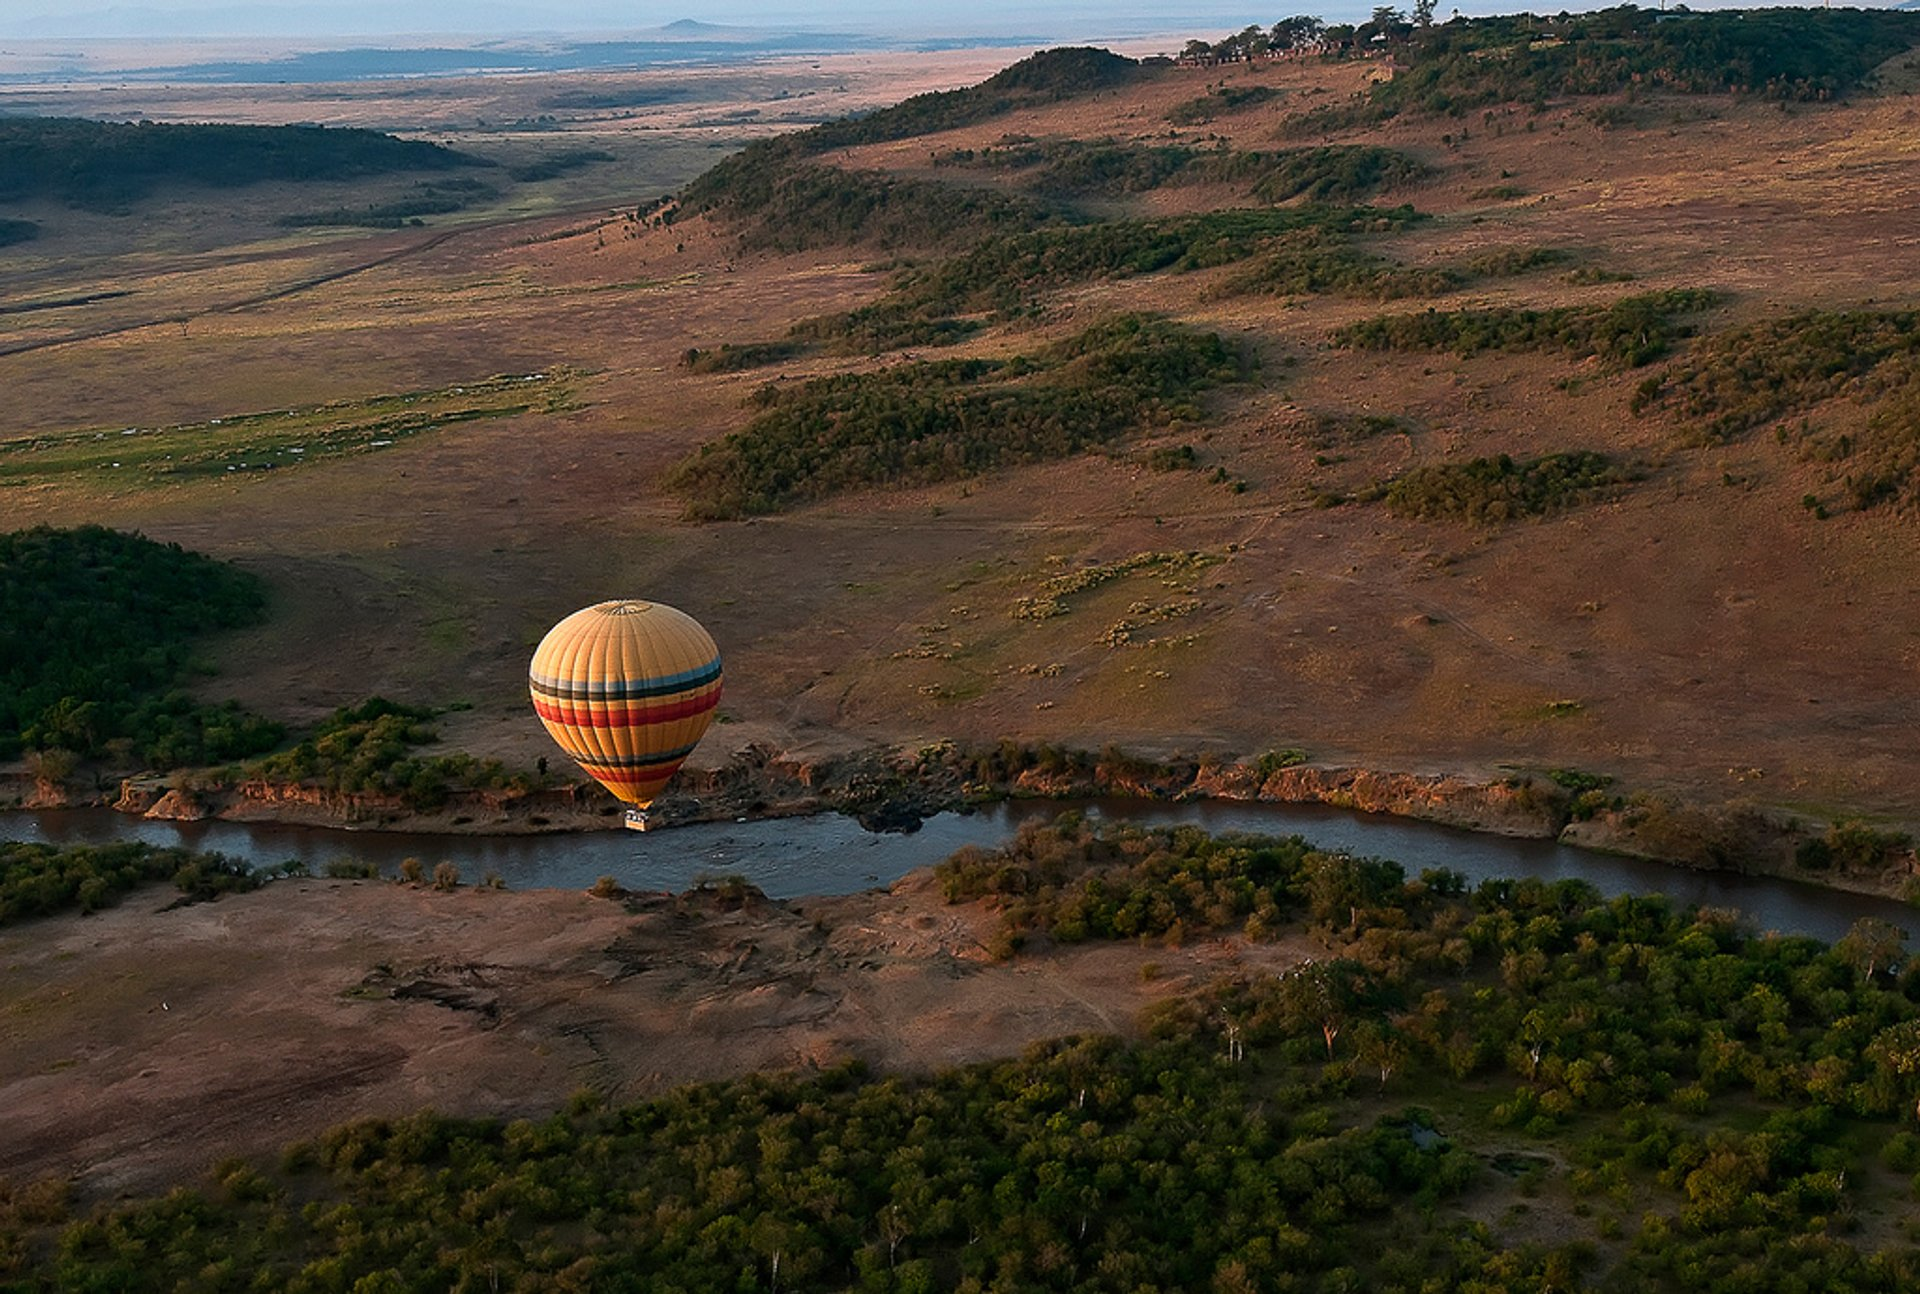 Early morning ballooning over the Masai Mara, Kenya 2020